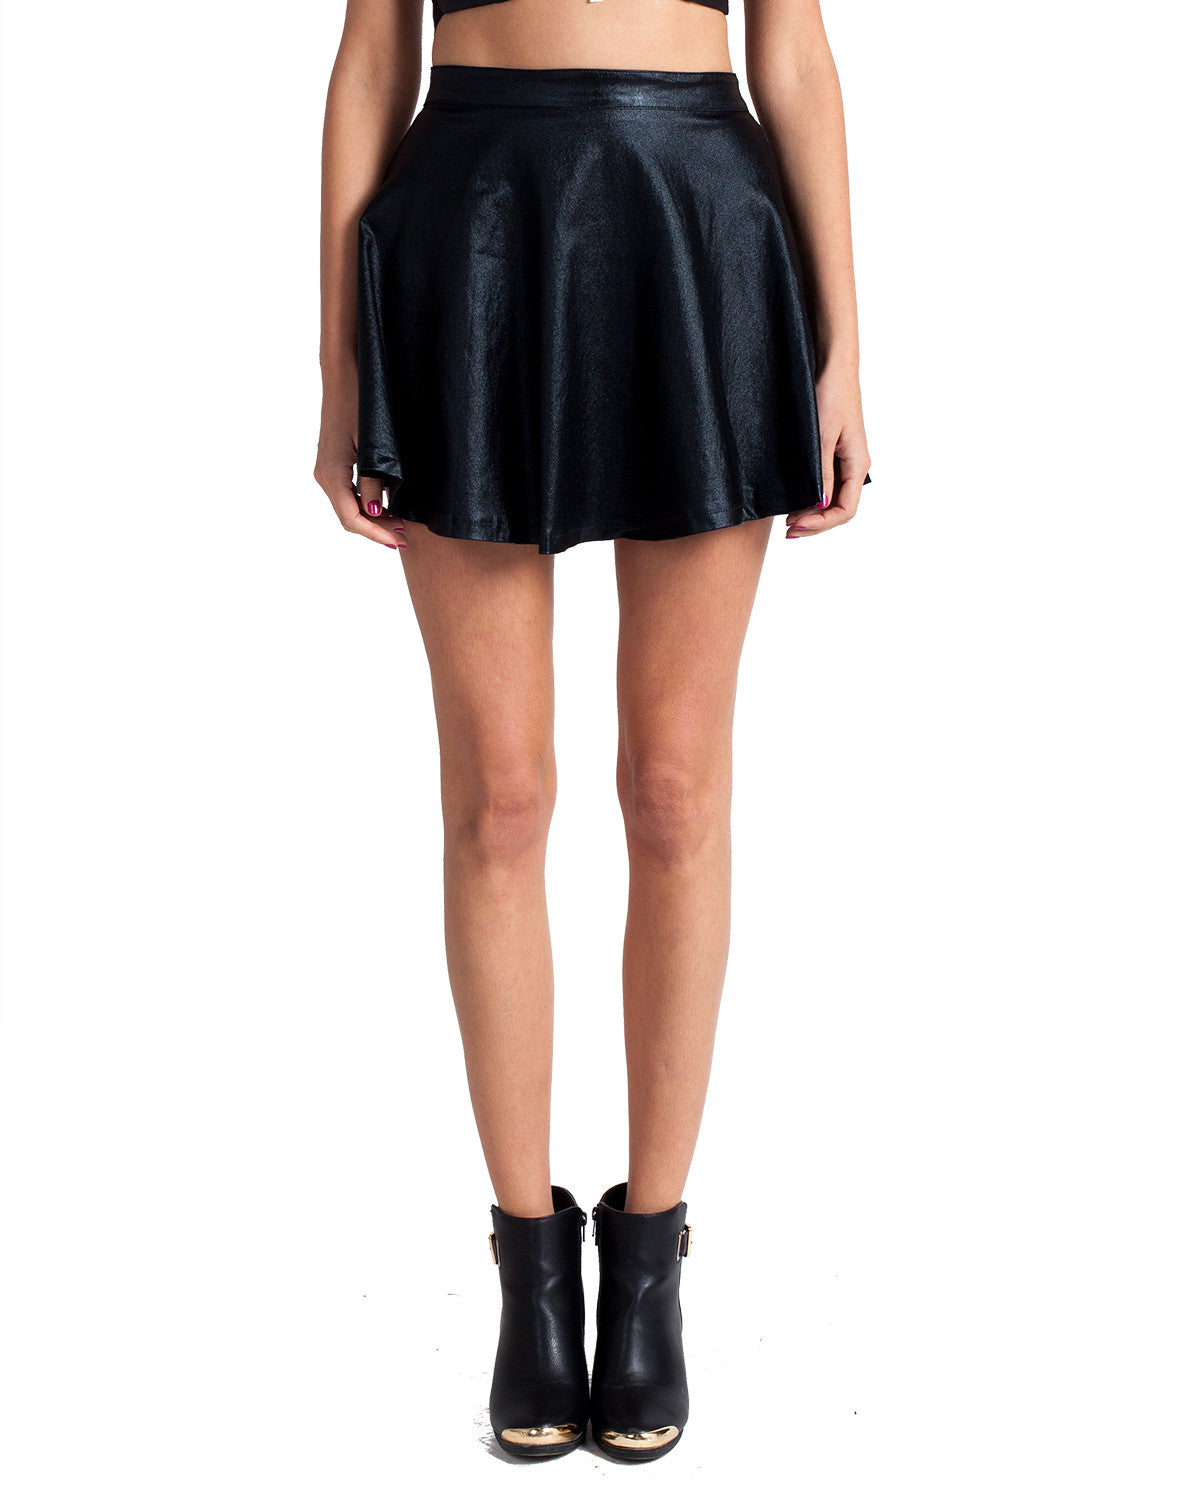 Sweet Dreams Skater Skirt - Large